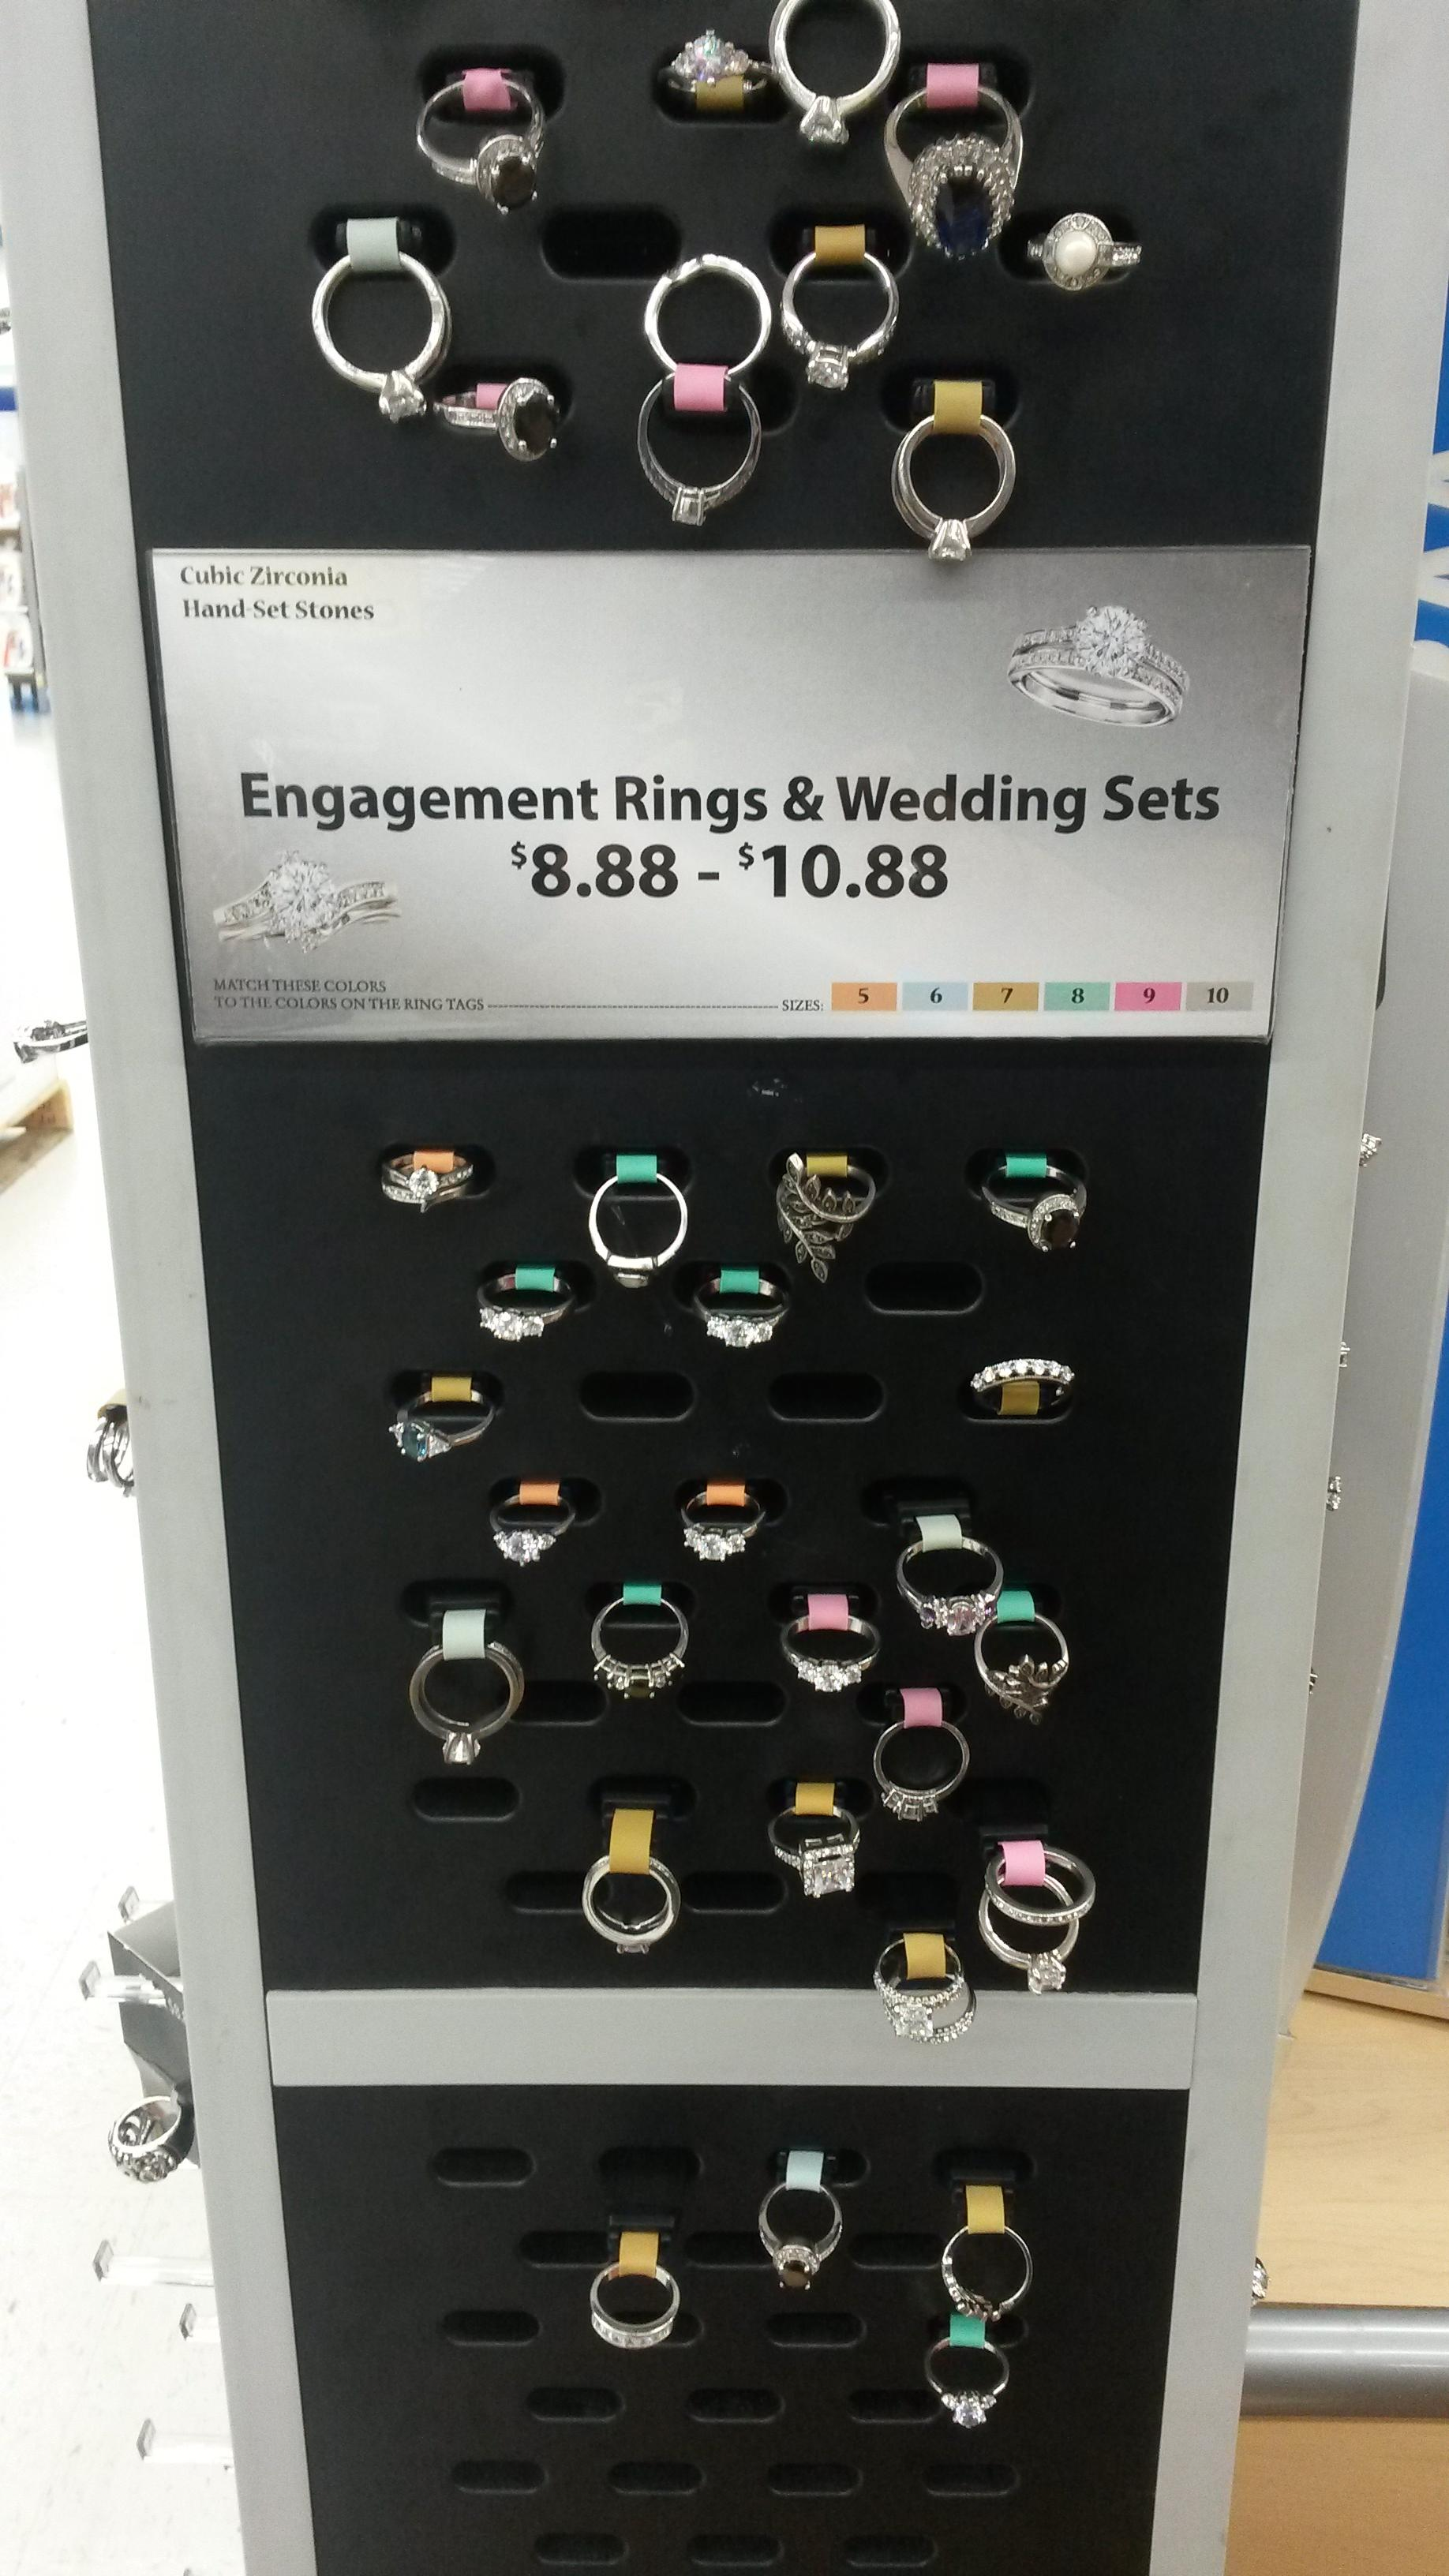 Are Walmart Wedding Rings Fake : walmart, wedding, rings, Wal-Mart's, Dollar, Engagement, Rings, Trashy